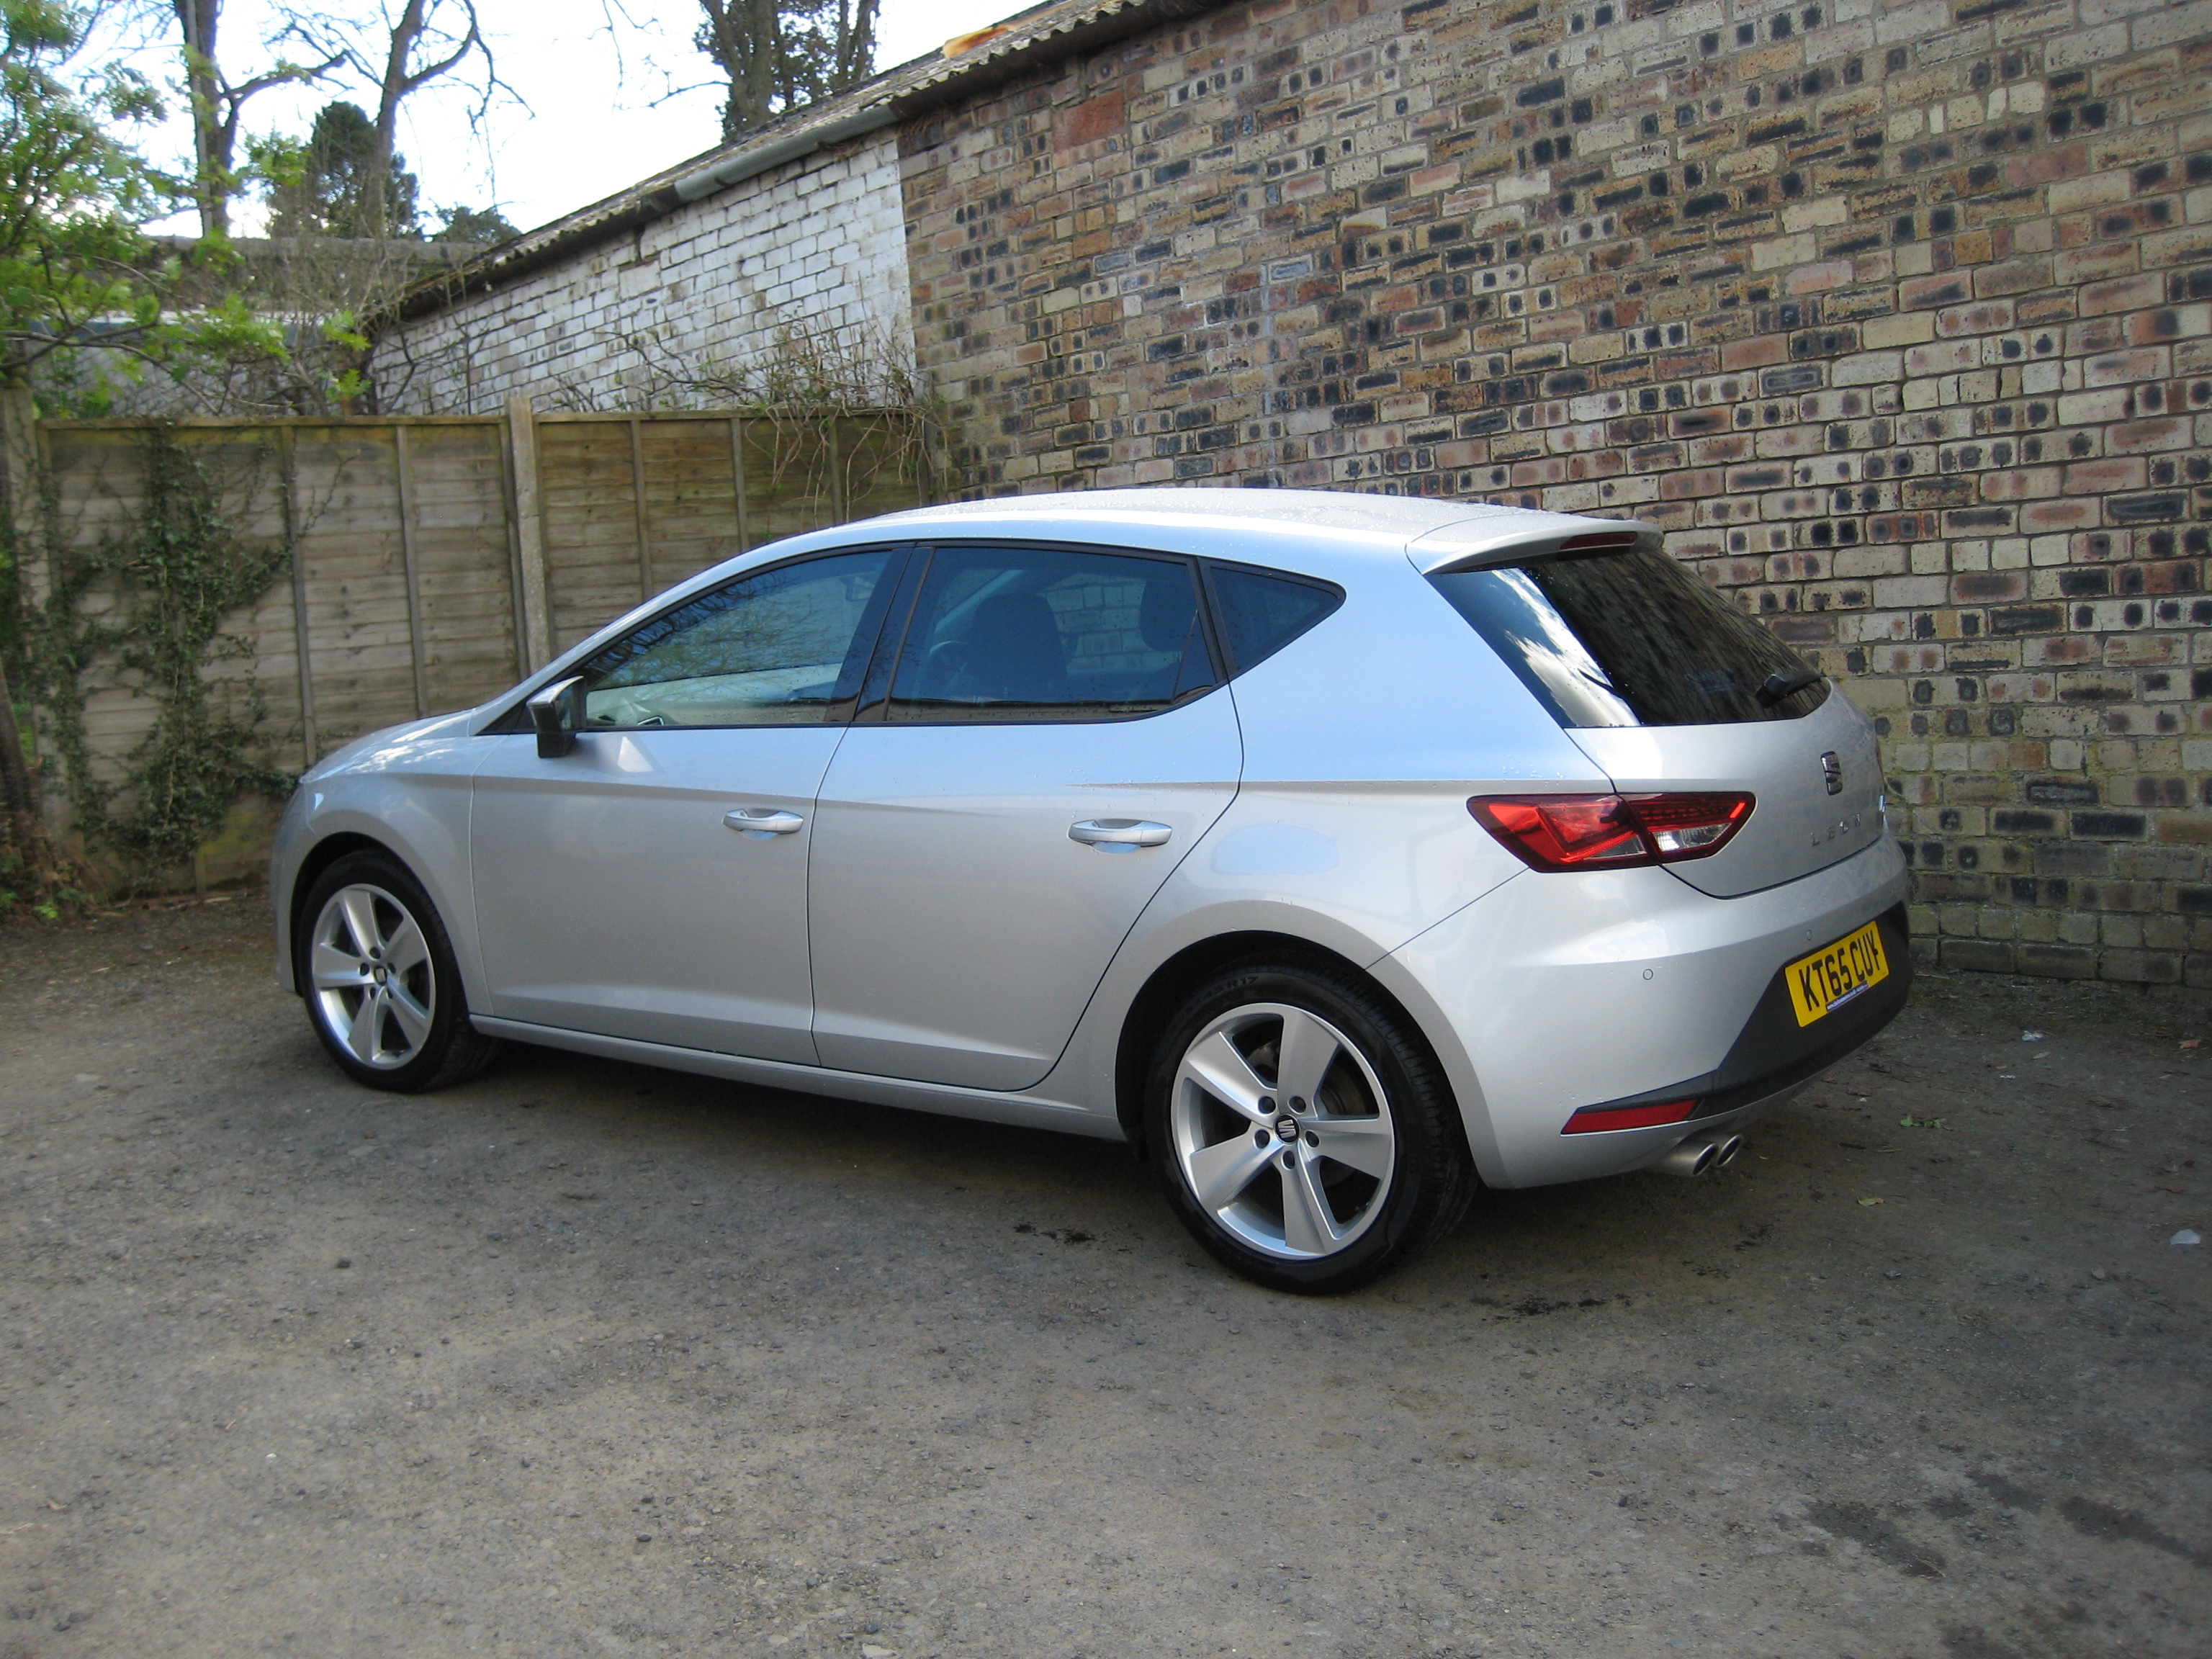 seat leon 2 0 tdi 150 bhp fr tecnology pack 5 door 2 0 diesel. Black Bedroom Furniture Sets. Home Design Ideas